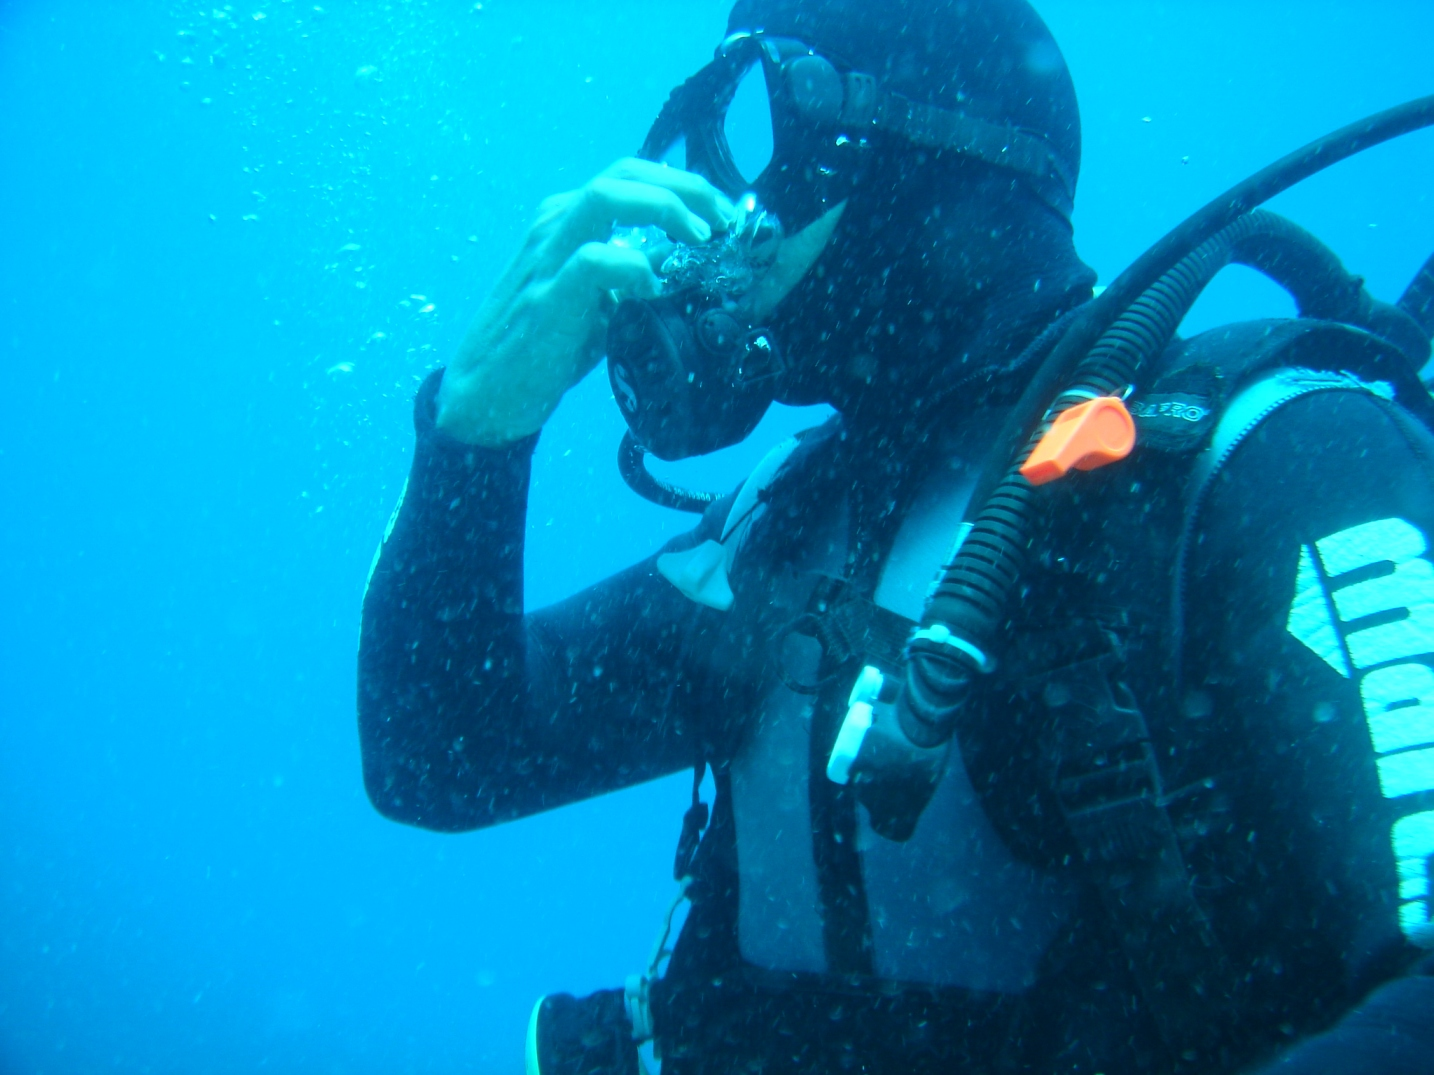 Scuba diving in Andamans © Wikicommons